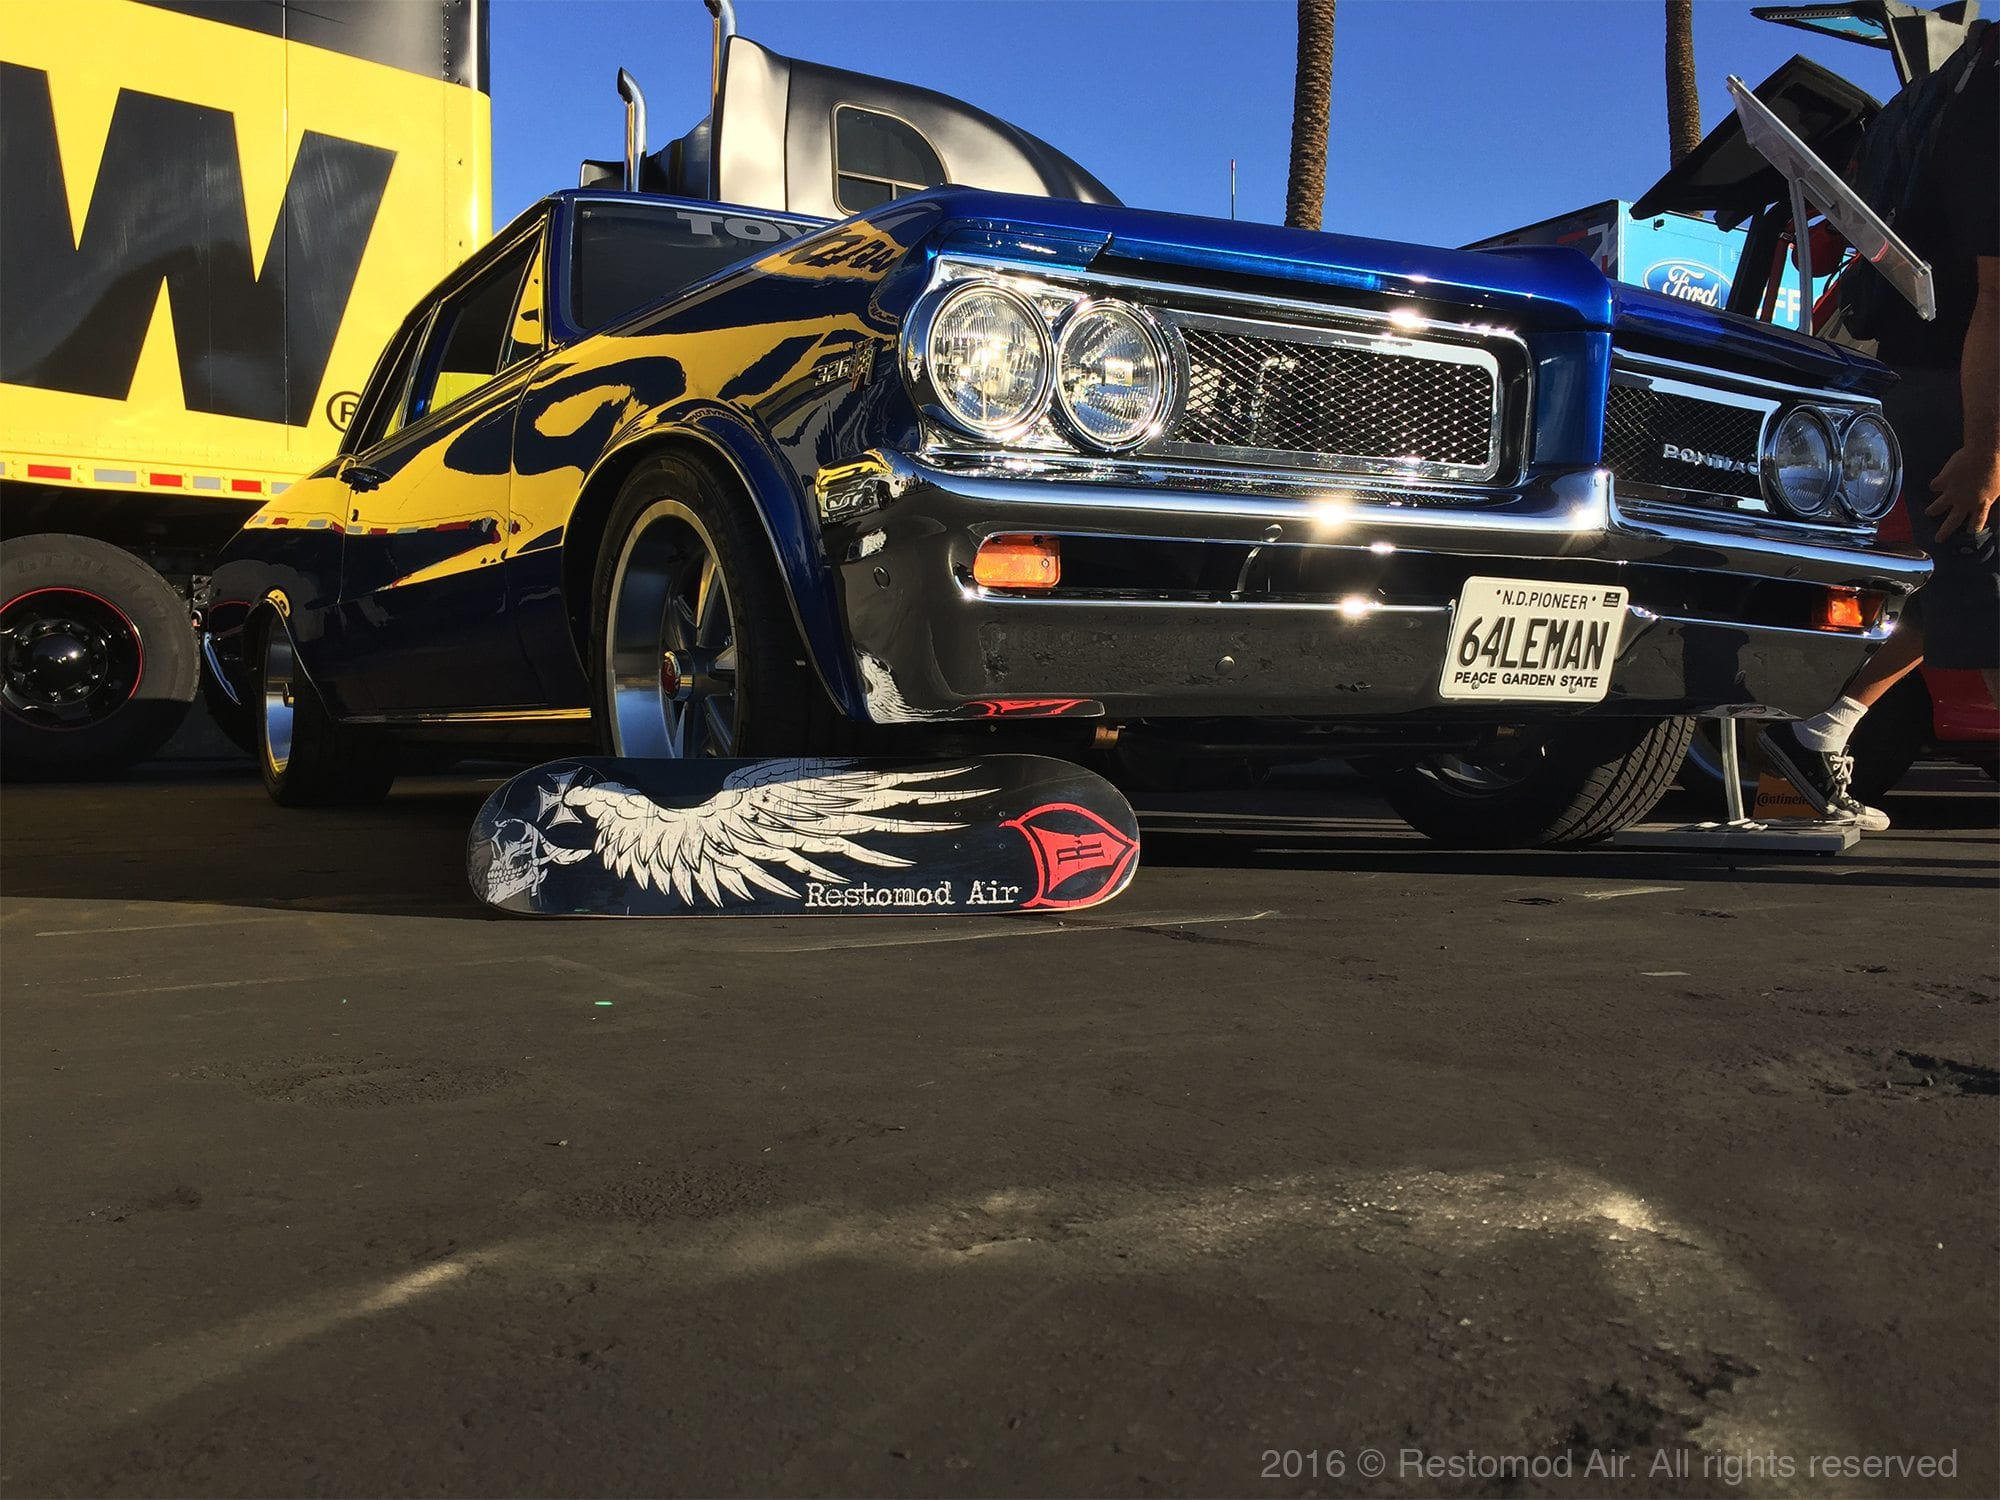 Bill Dunn One Stop Shop Installs Restomod Air